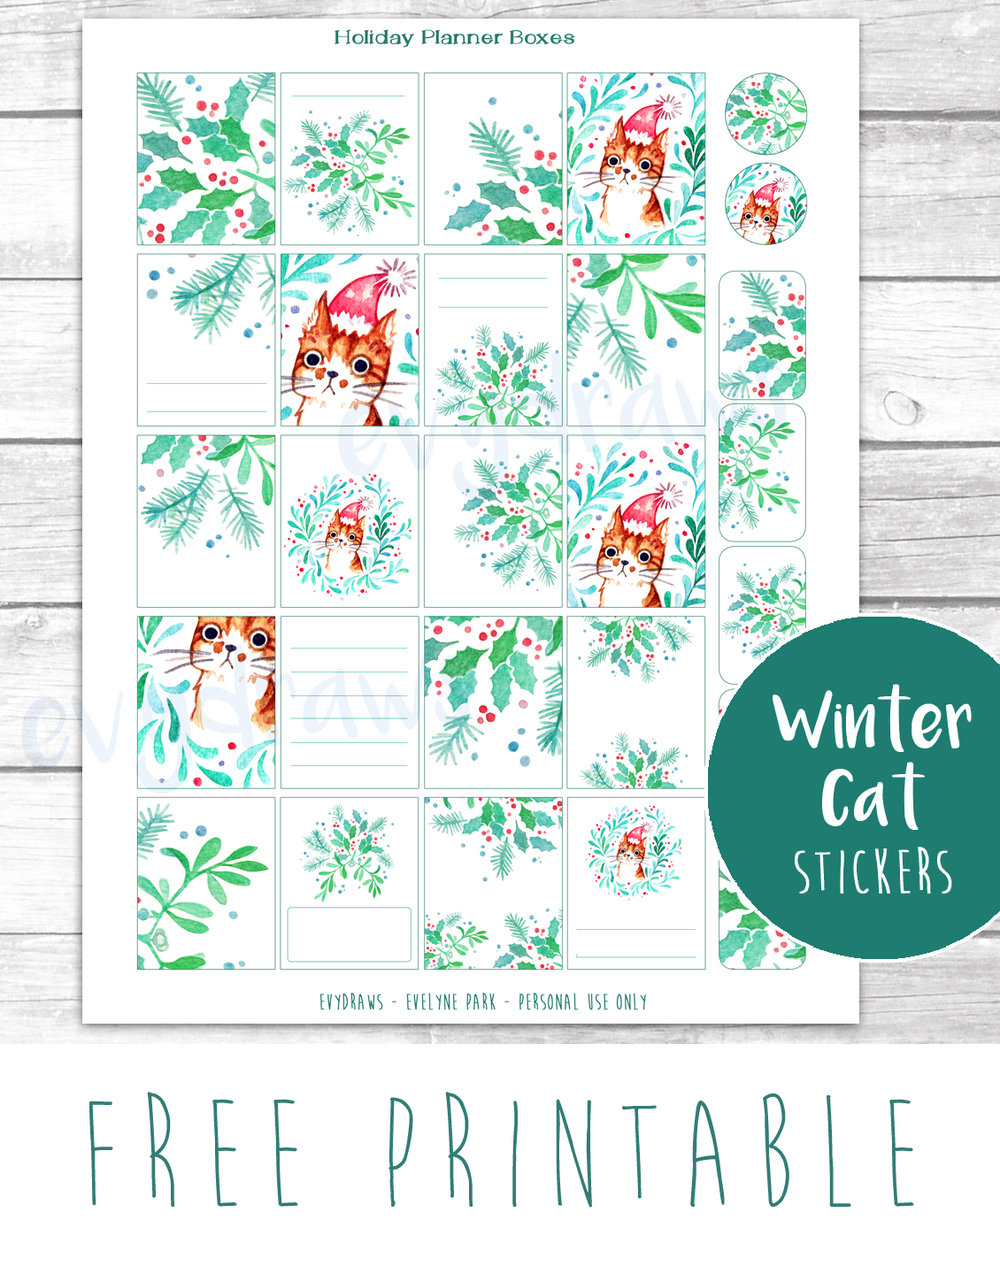 free printable diy holiday planner stickers created with my watercolor santa cat and